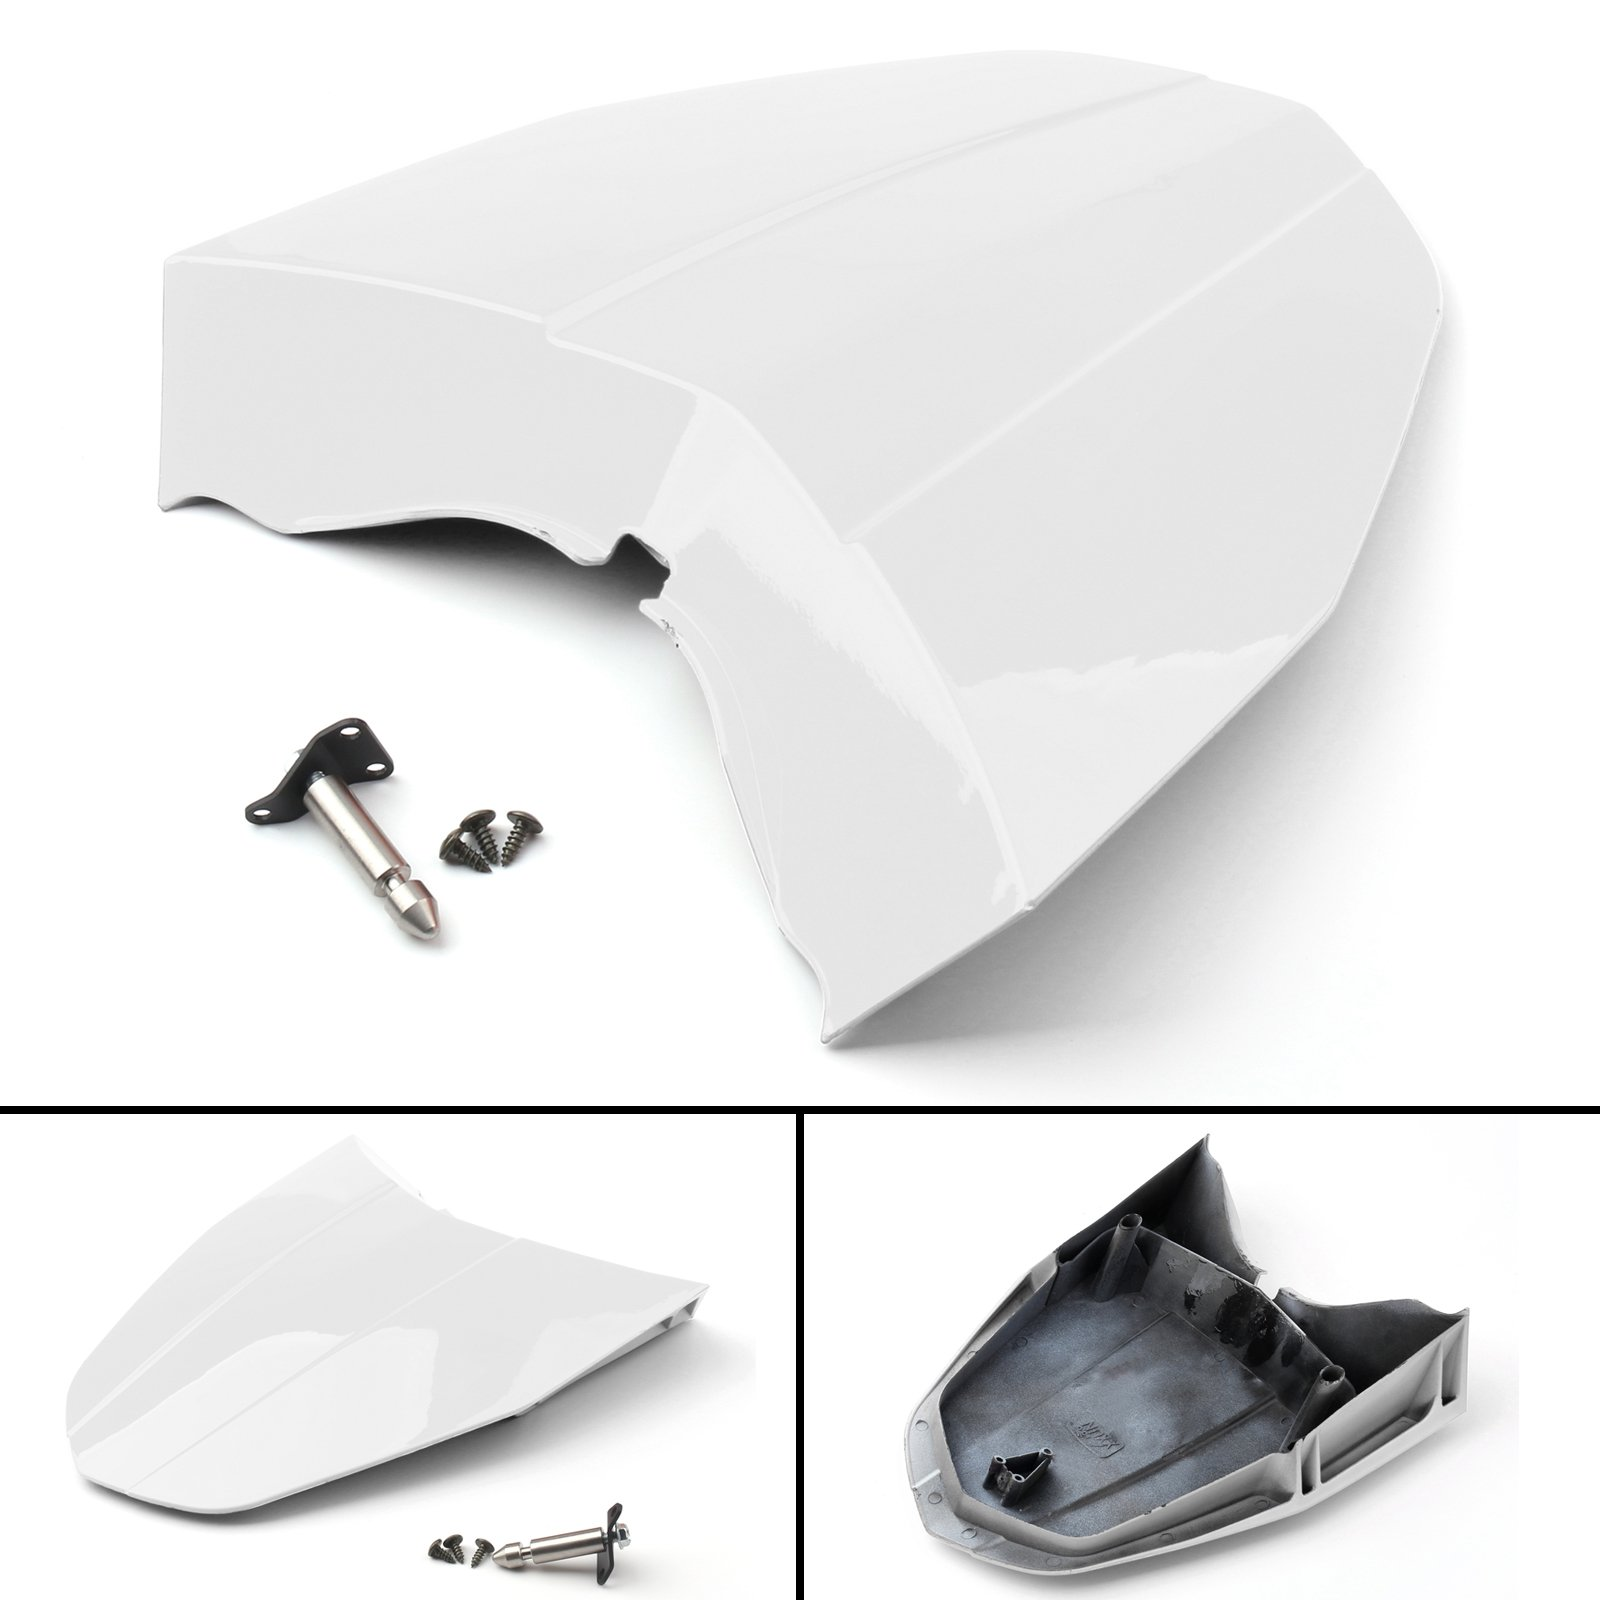 Areyourshop White ABS Rear Tail Solo Seat Cover Cowl Fairing For 2013-2015 KTM 690 DUKE